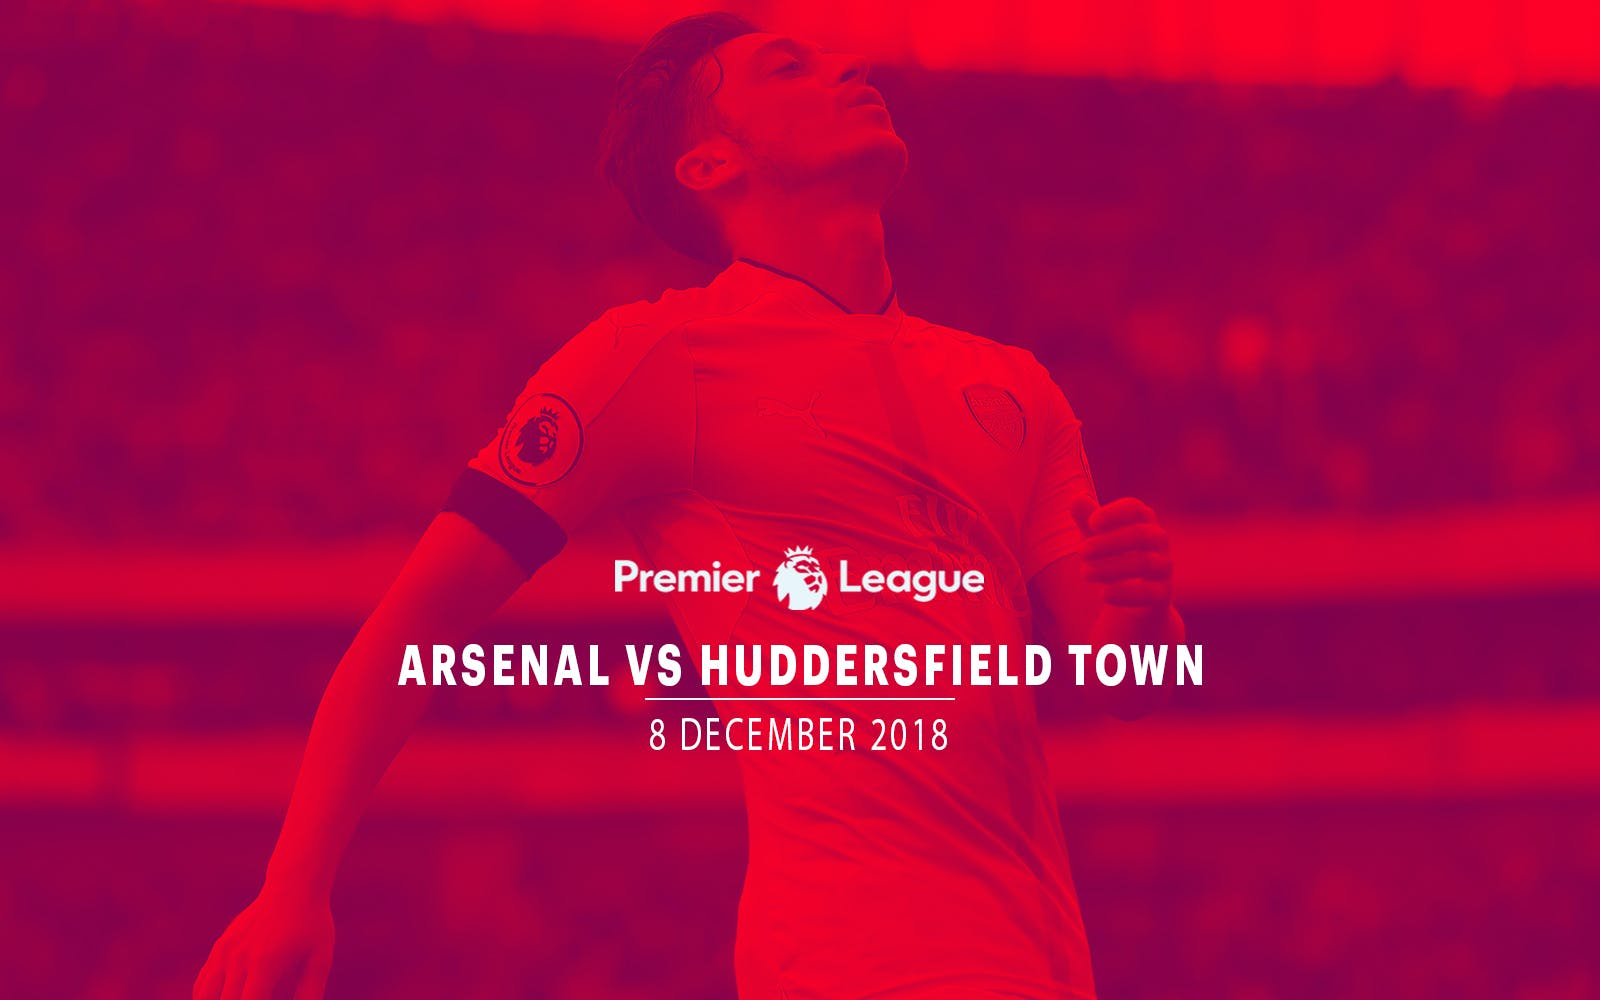 Arsenal vs Huddersfield Town - 8th Dec'18